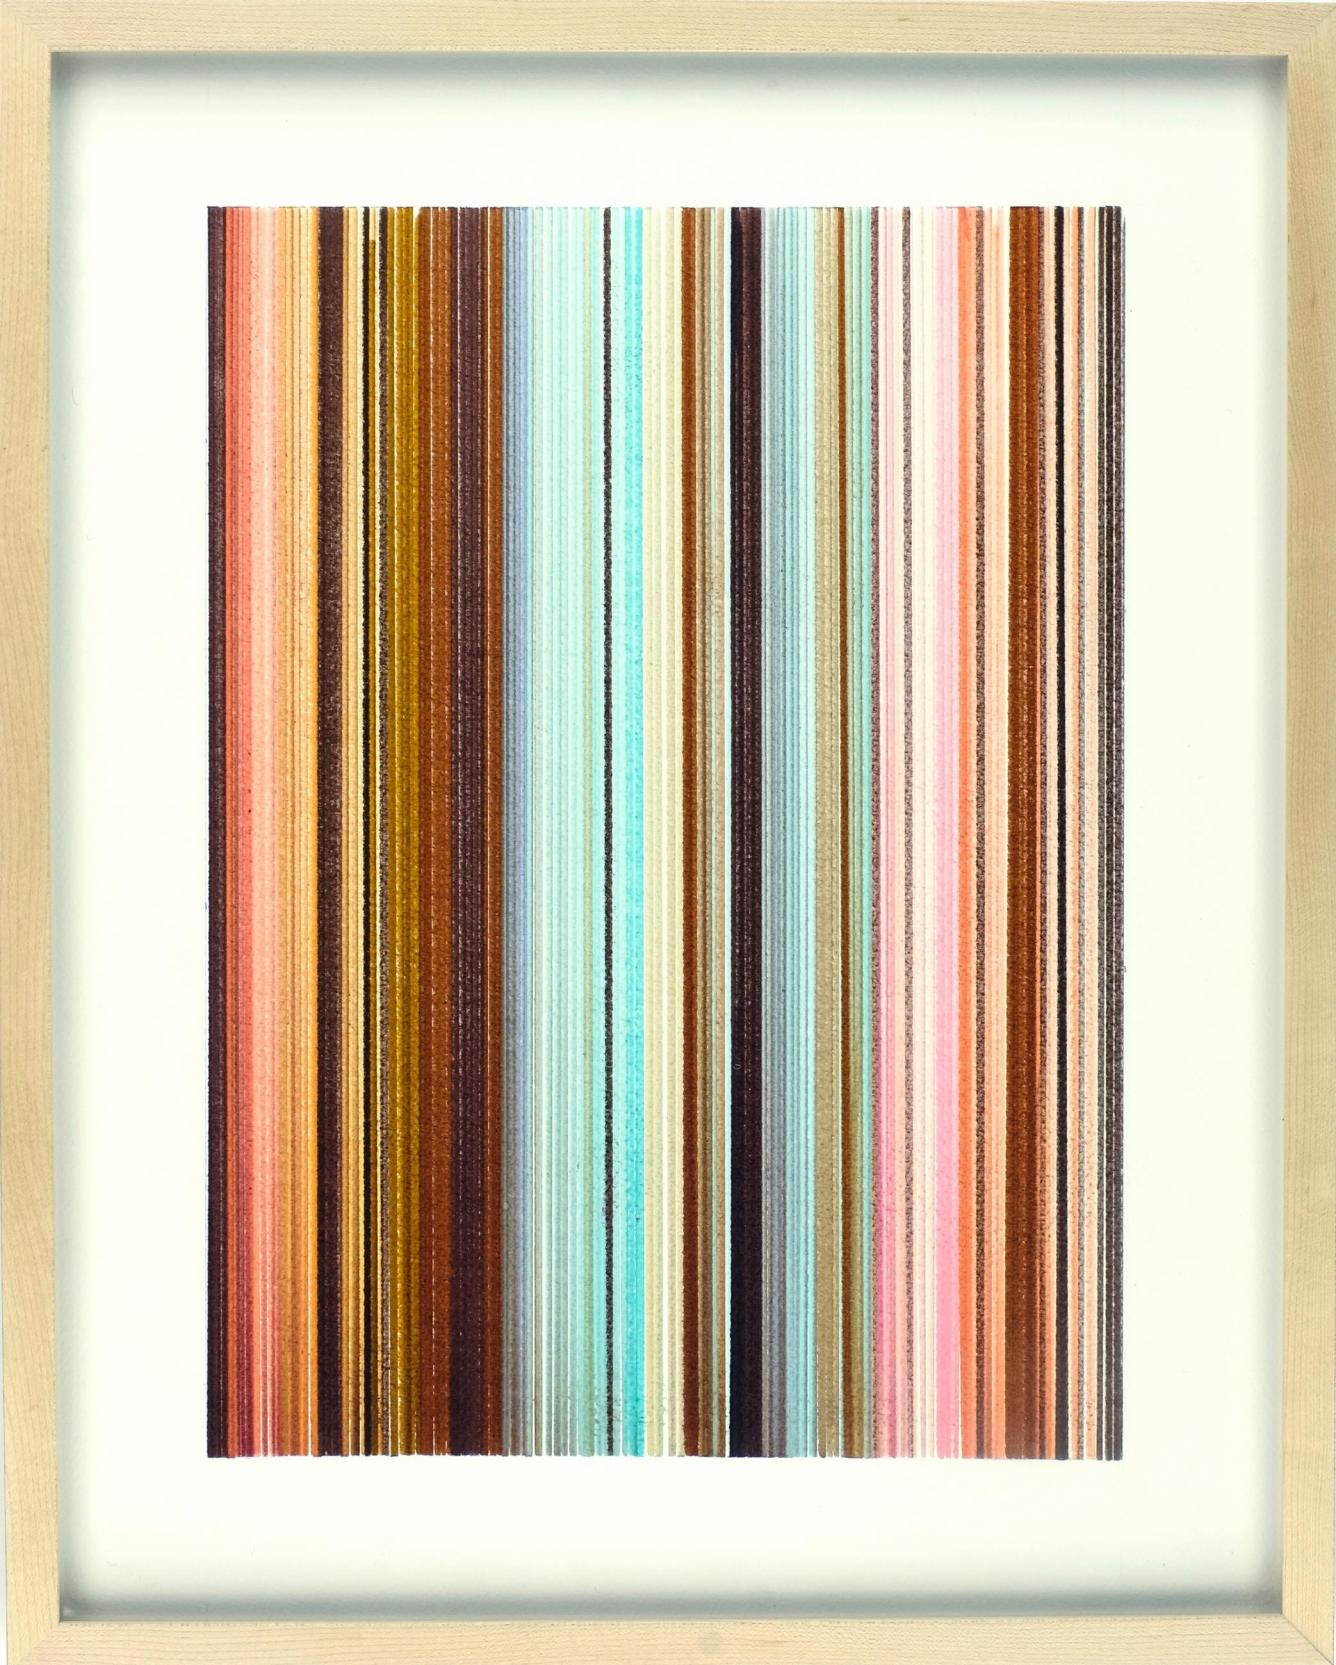 An abstract painting depicting many vertical lines in earth tones. It is almost representative of the layers of the Earth's crust.